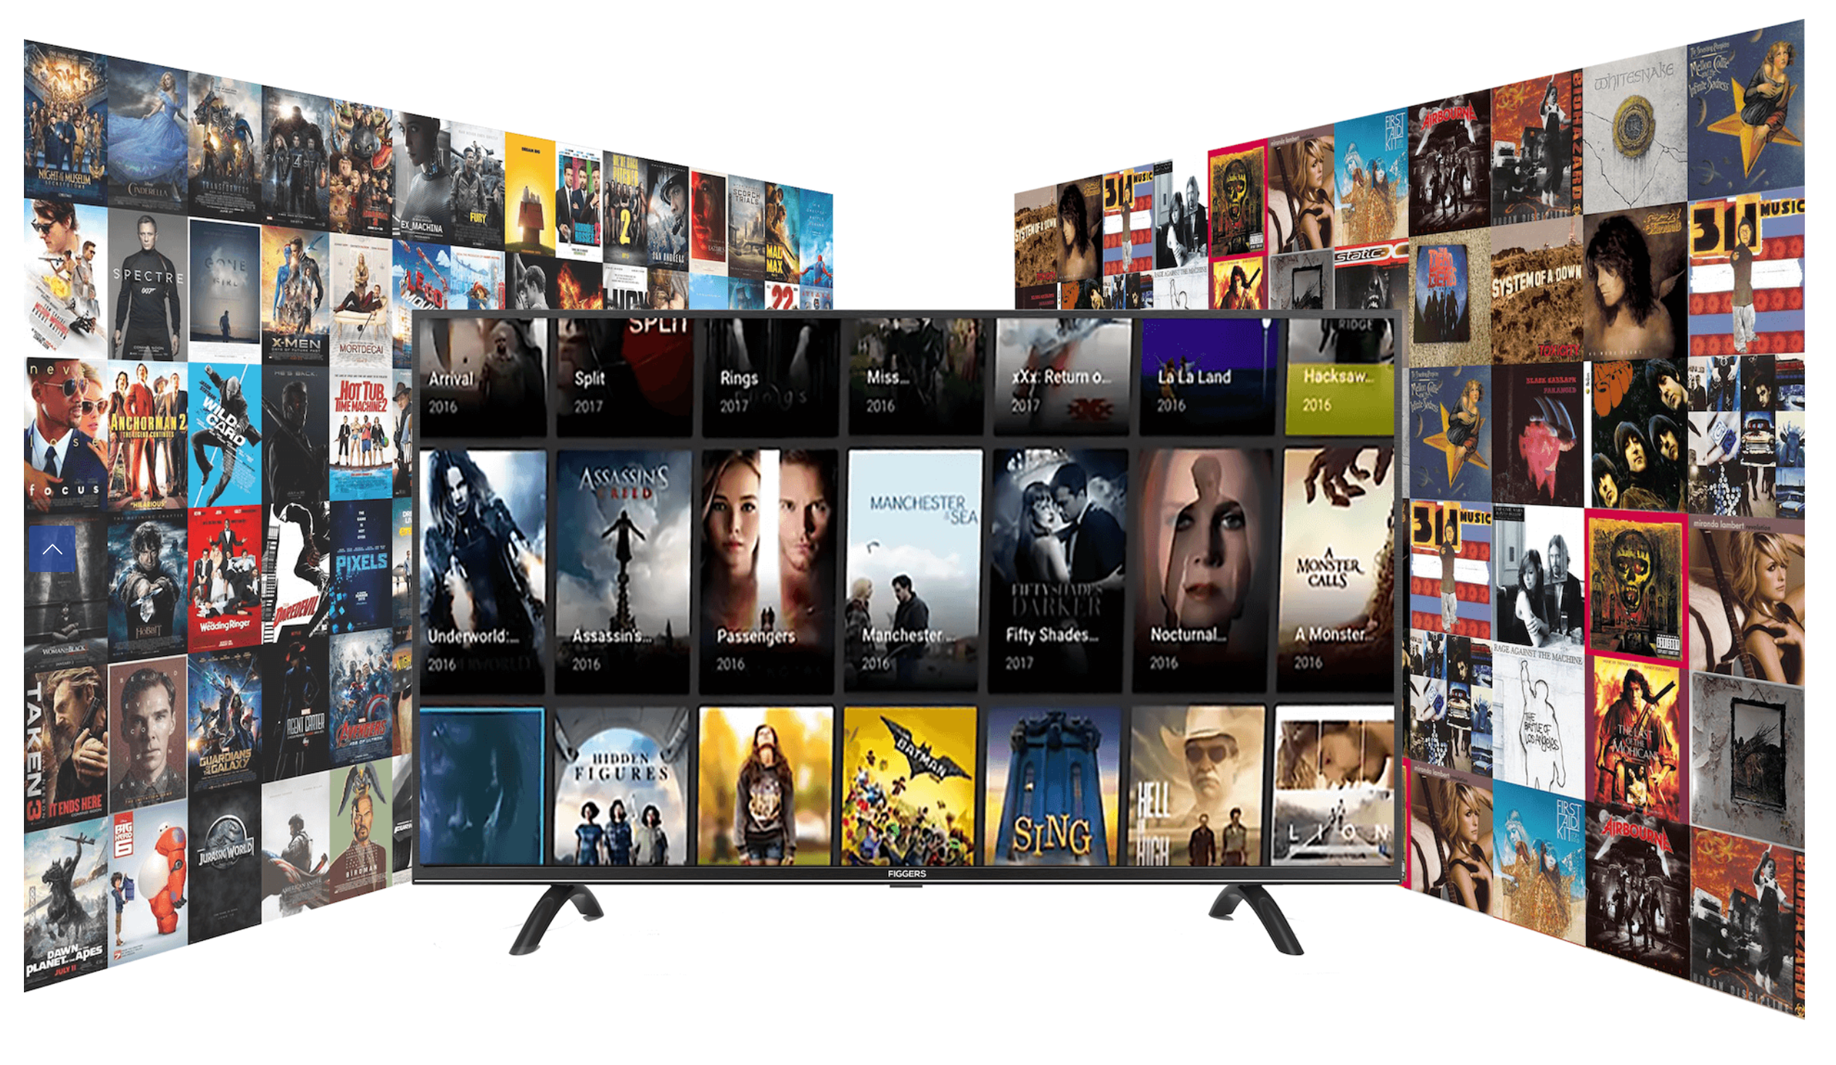 Smart TV Your Own Library